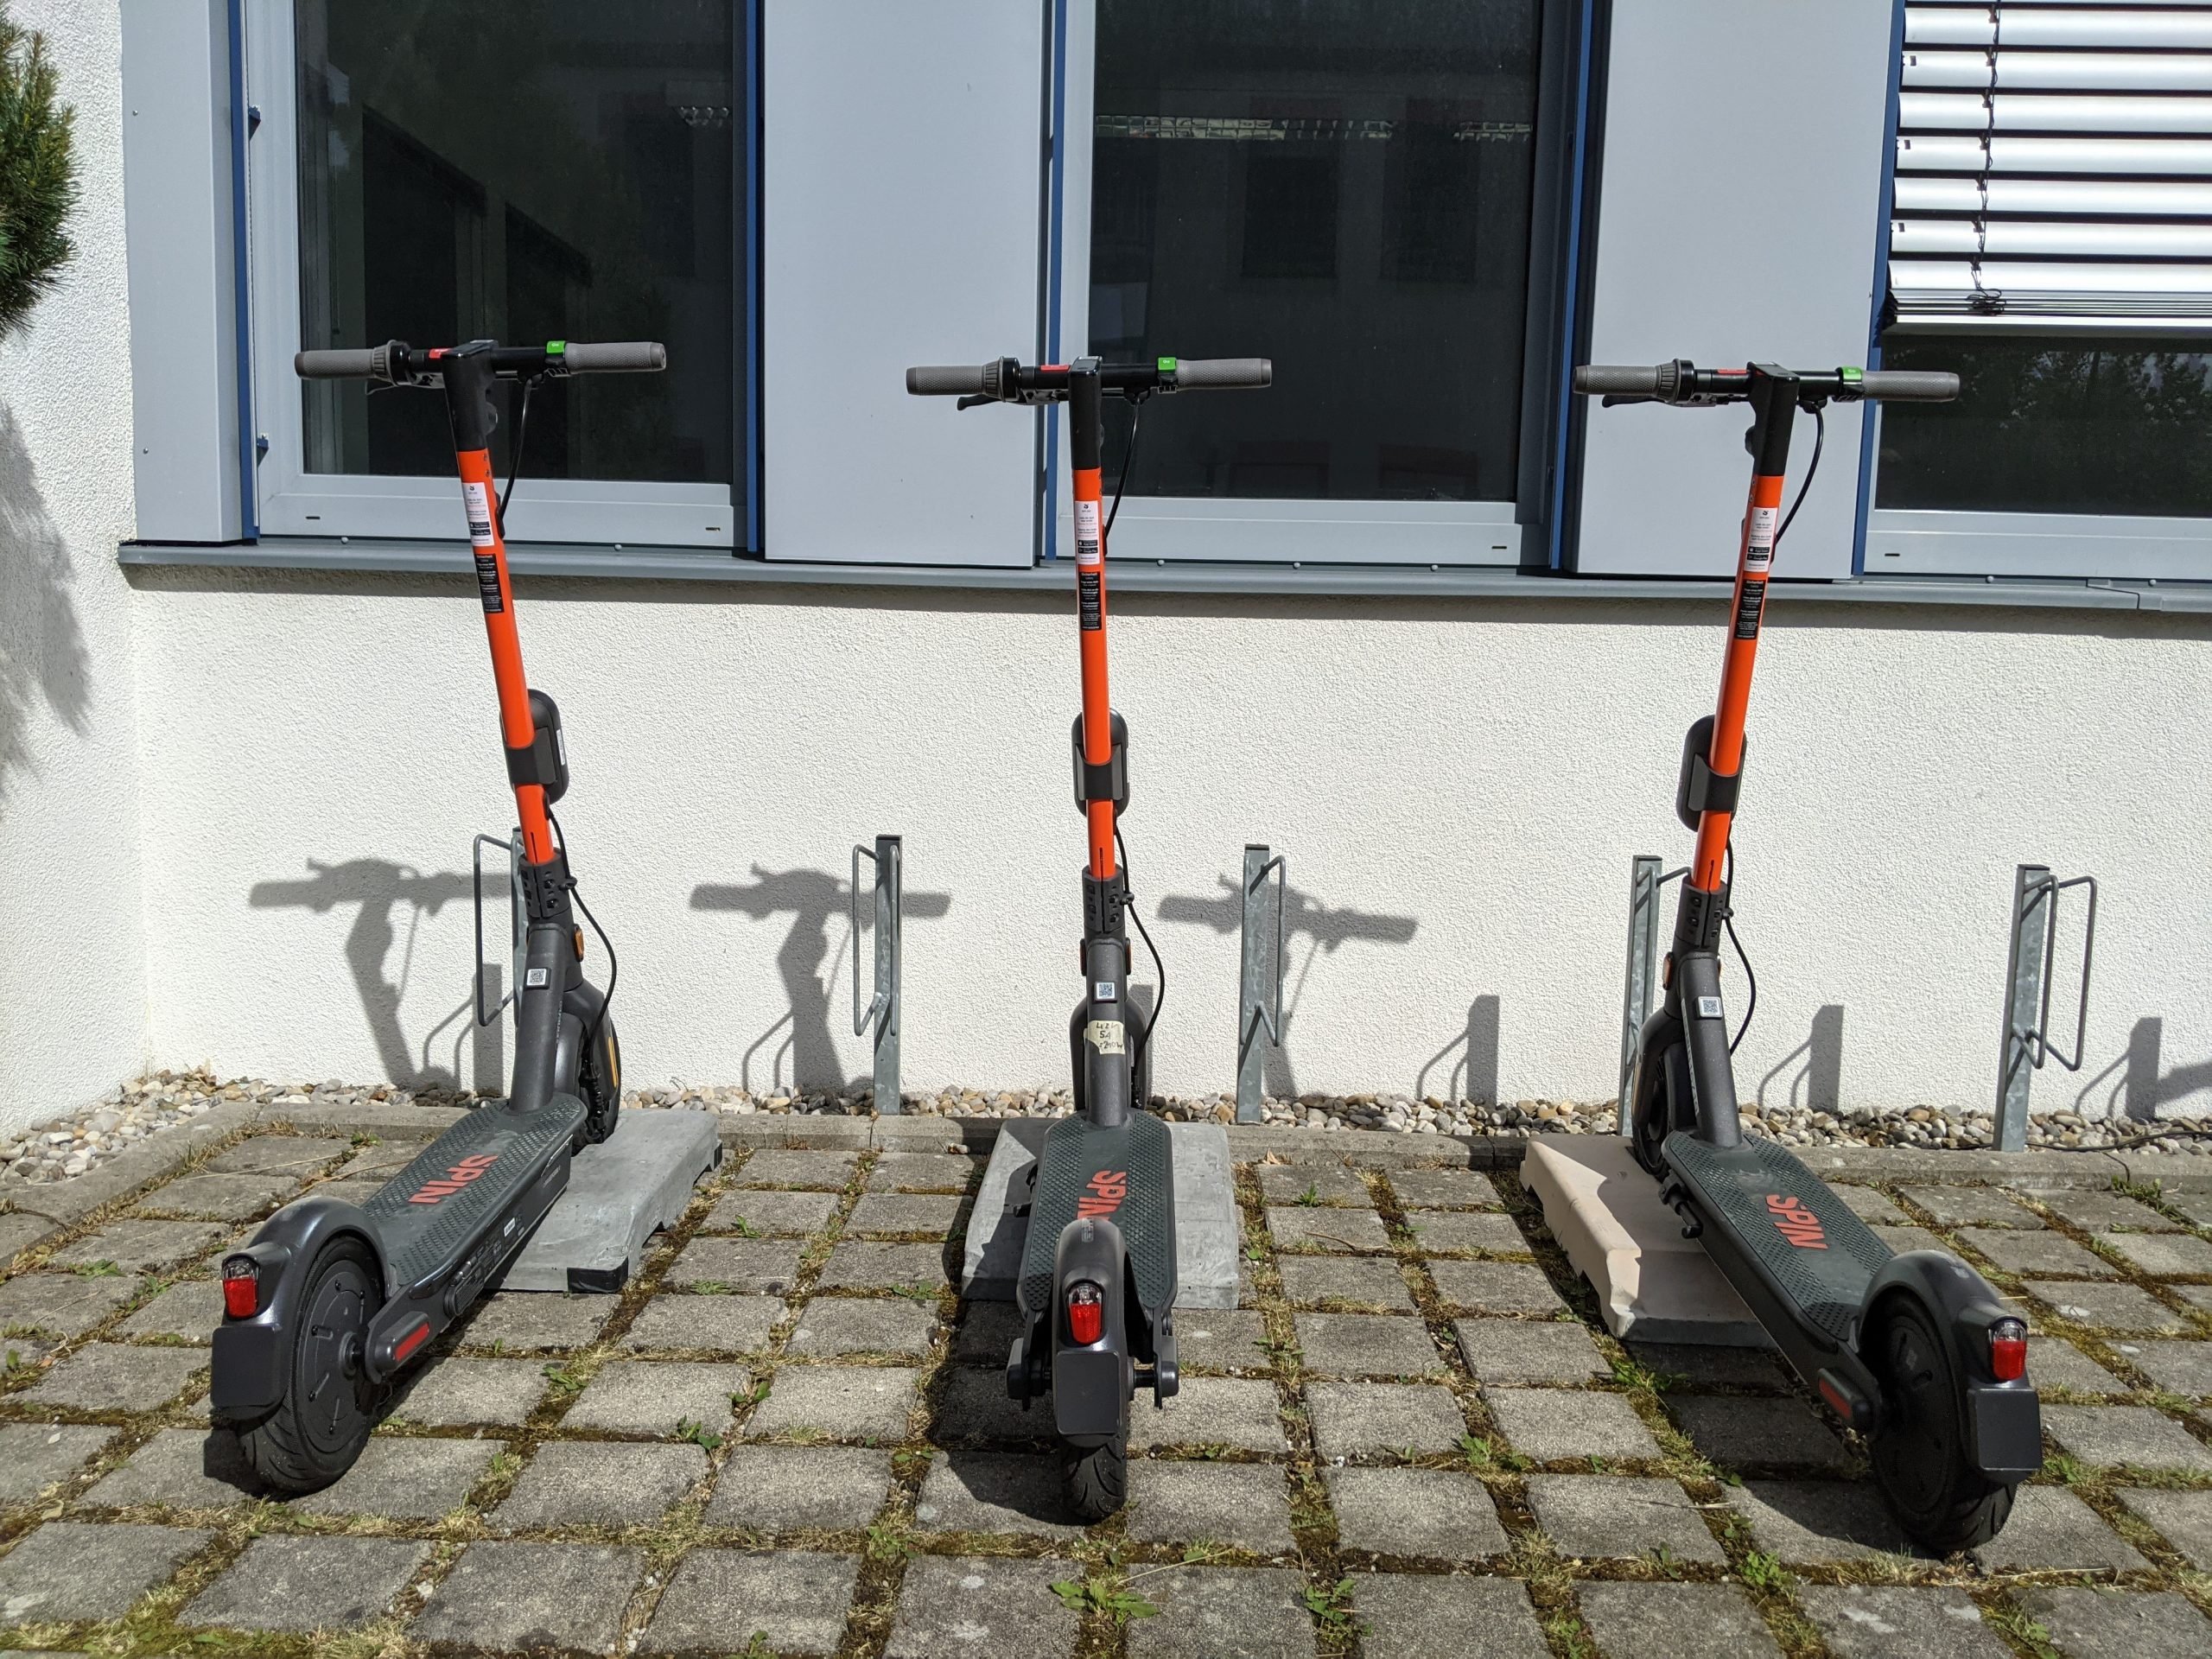 Scooter Charging Stations